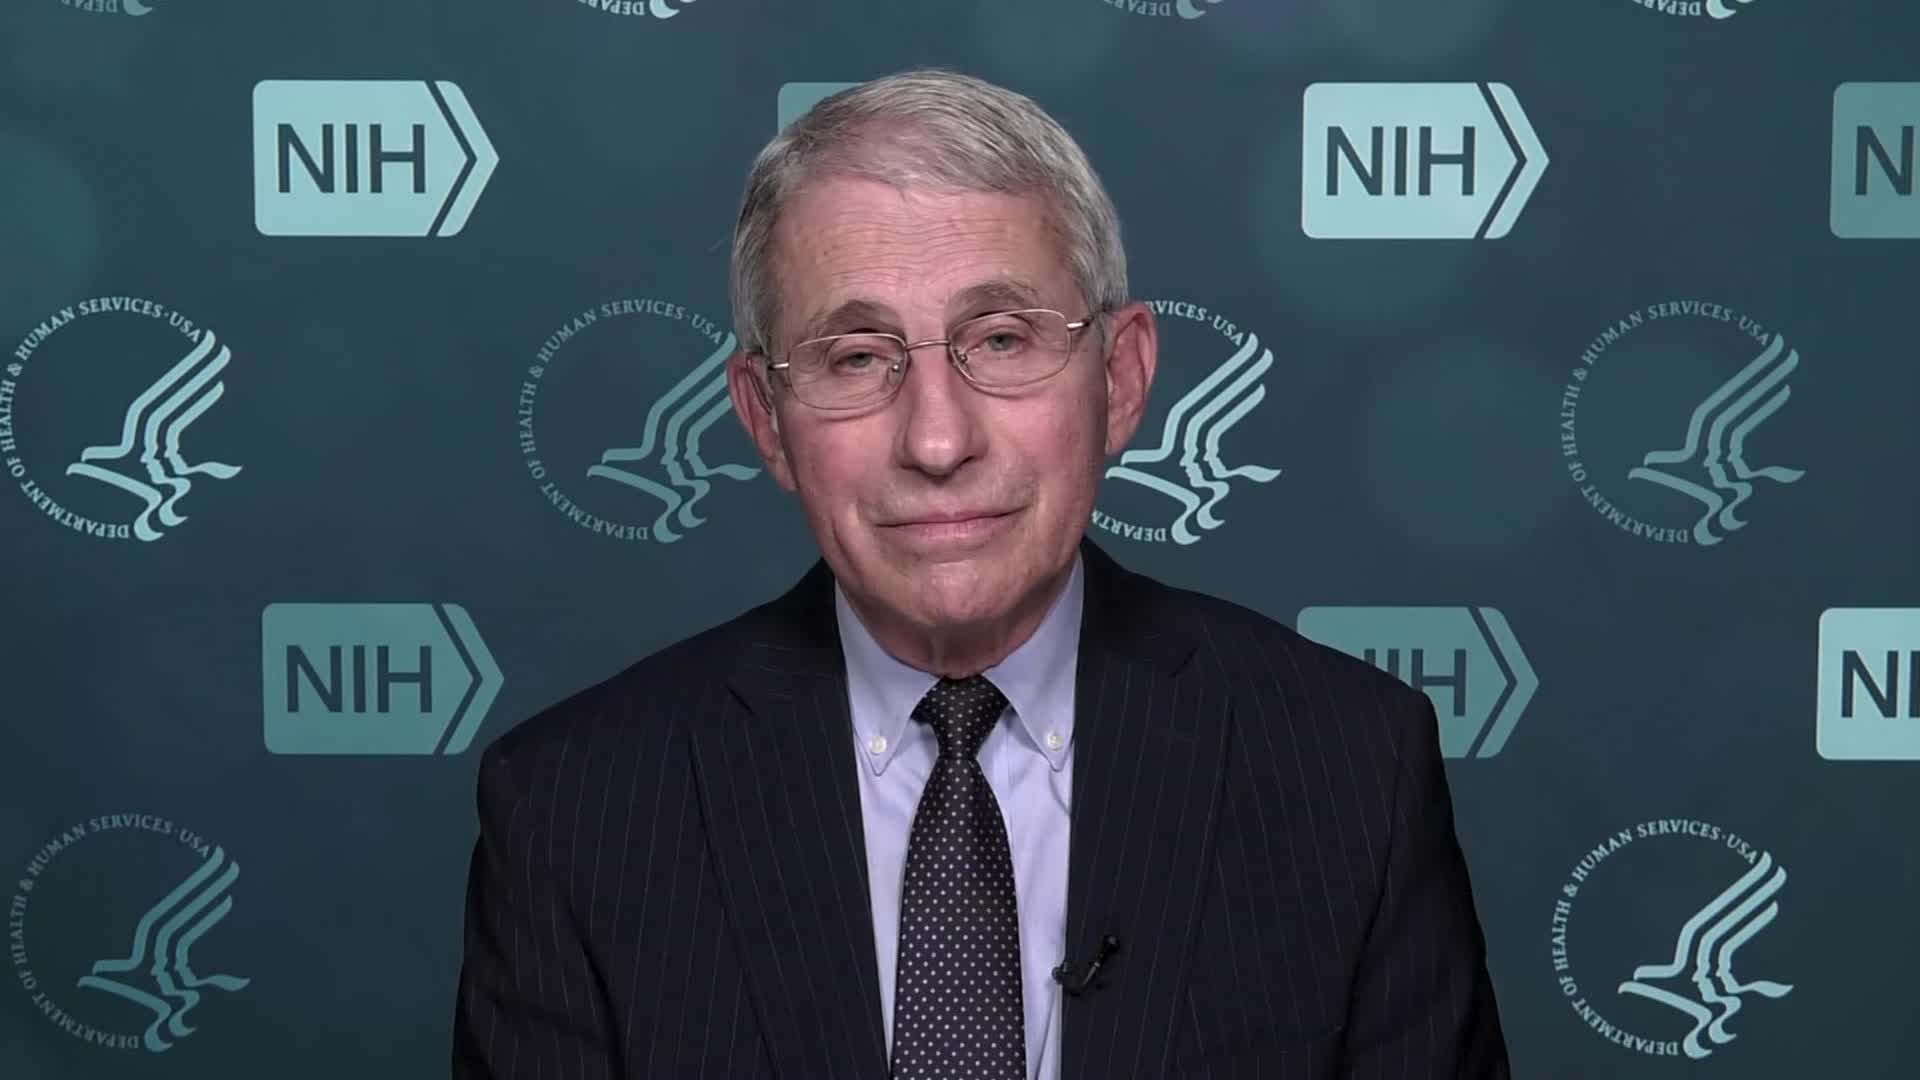 Dr. Anthony Fauci on December 10.